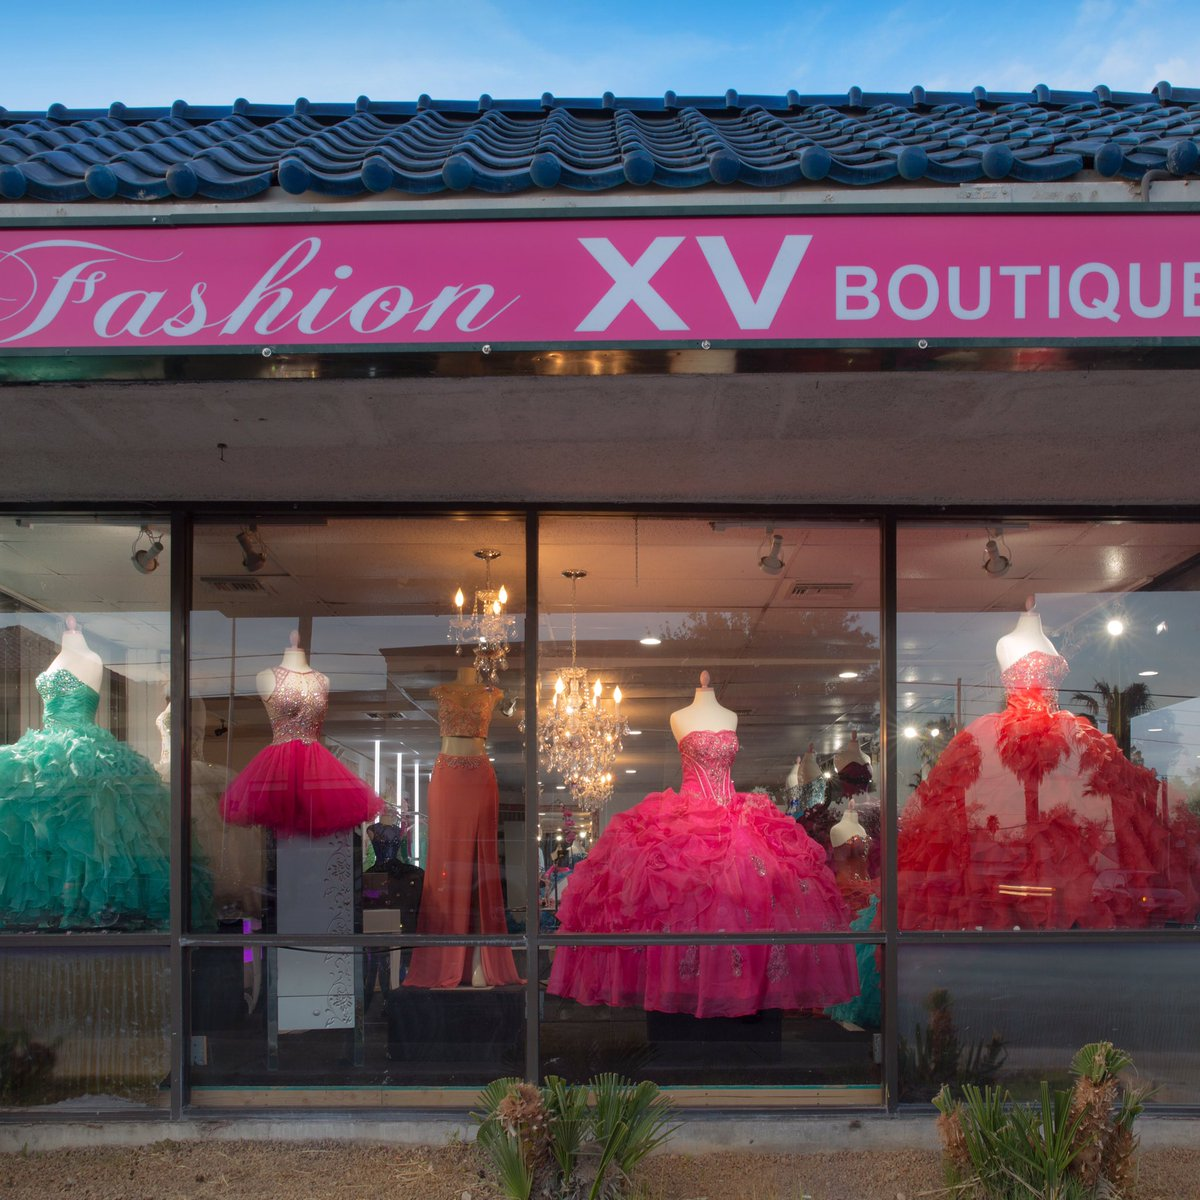 Fashion XV Boutique (@fashionxvbtq)